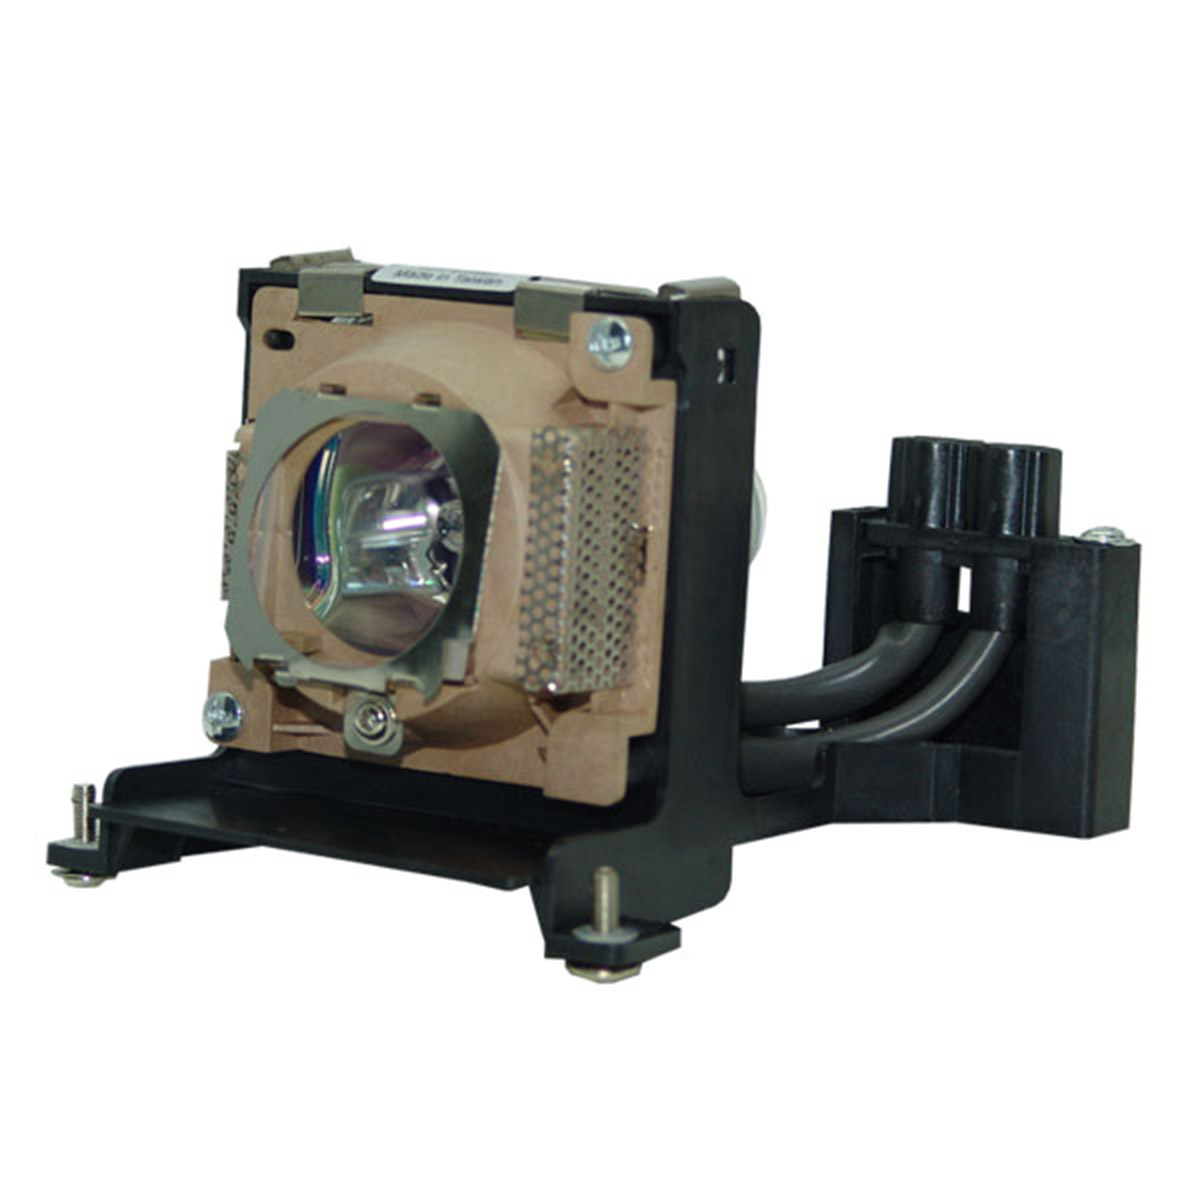 Lamp Housing For HP VP6110 Projector DLP LCD Bulb